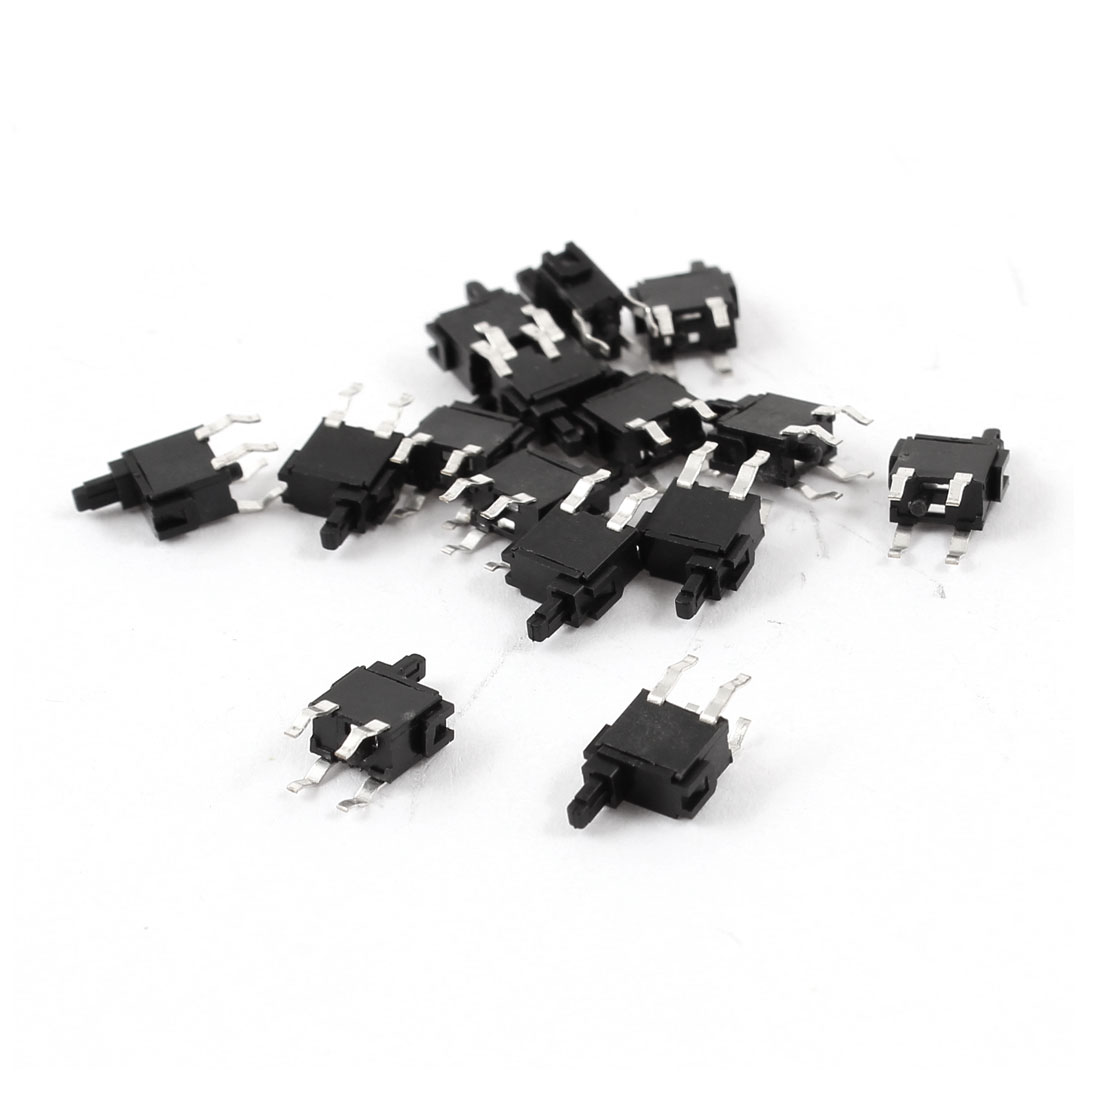 15 Pcs 4 Pins DPST PCB Mounted Momentary Action Push Button Micro Switch